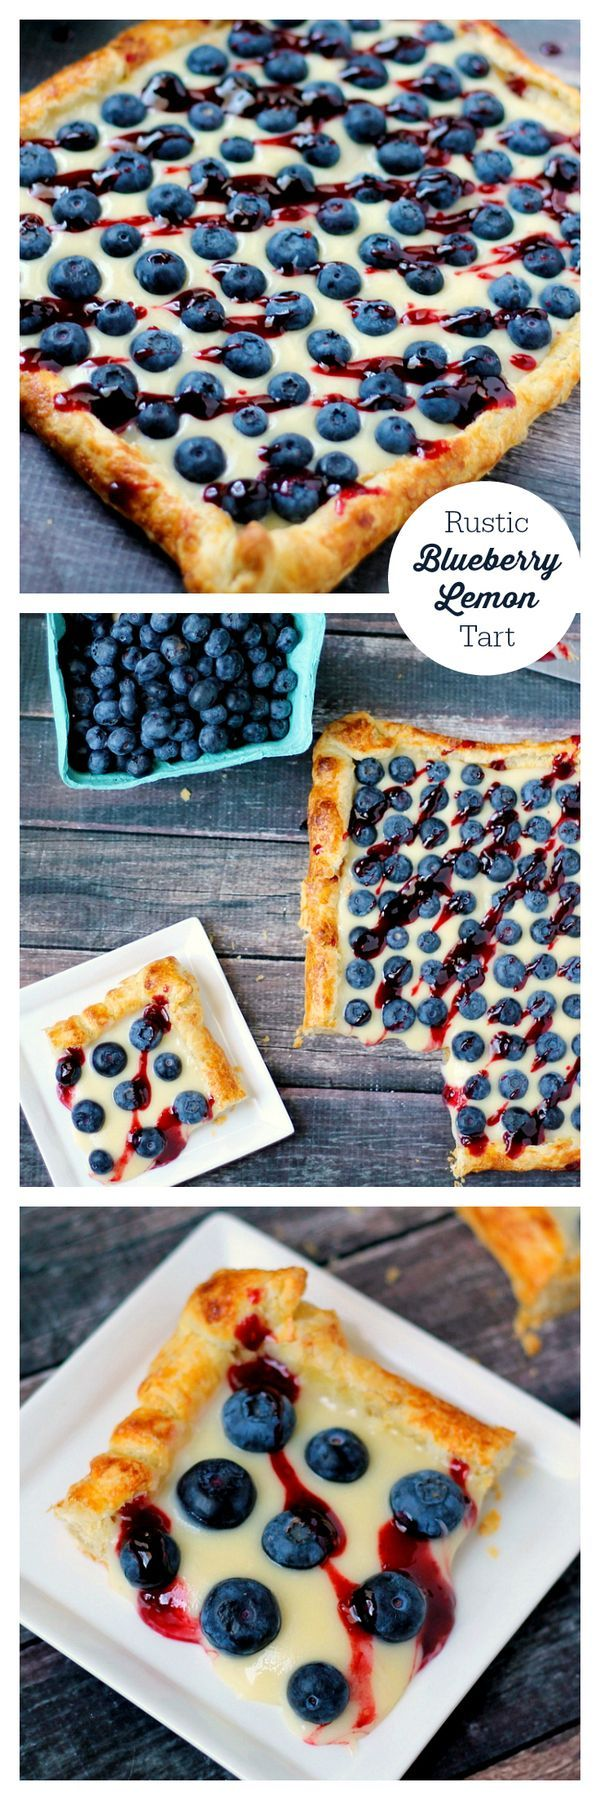 Rustic Blueberry Lemon Tart--with a flaky crust, creamy lemon filling and topped with fresh blueberries and preserves, just thinking about this luscious dessert makes me drool! Get this recipe today!